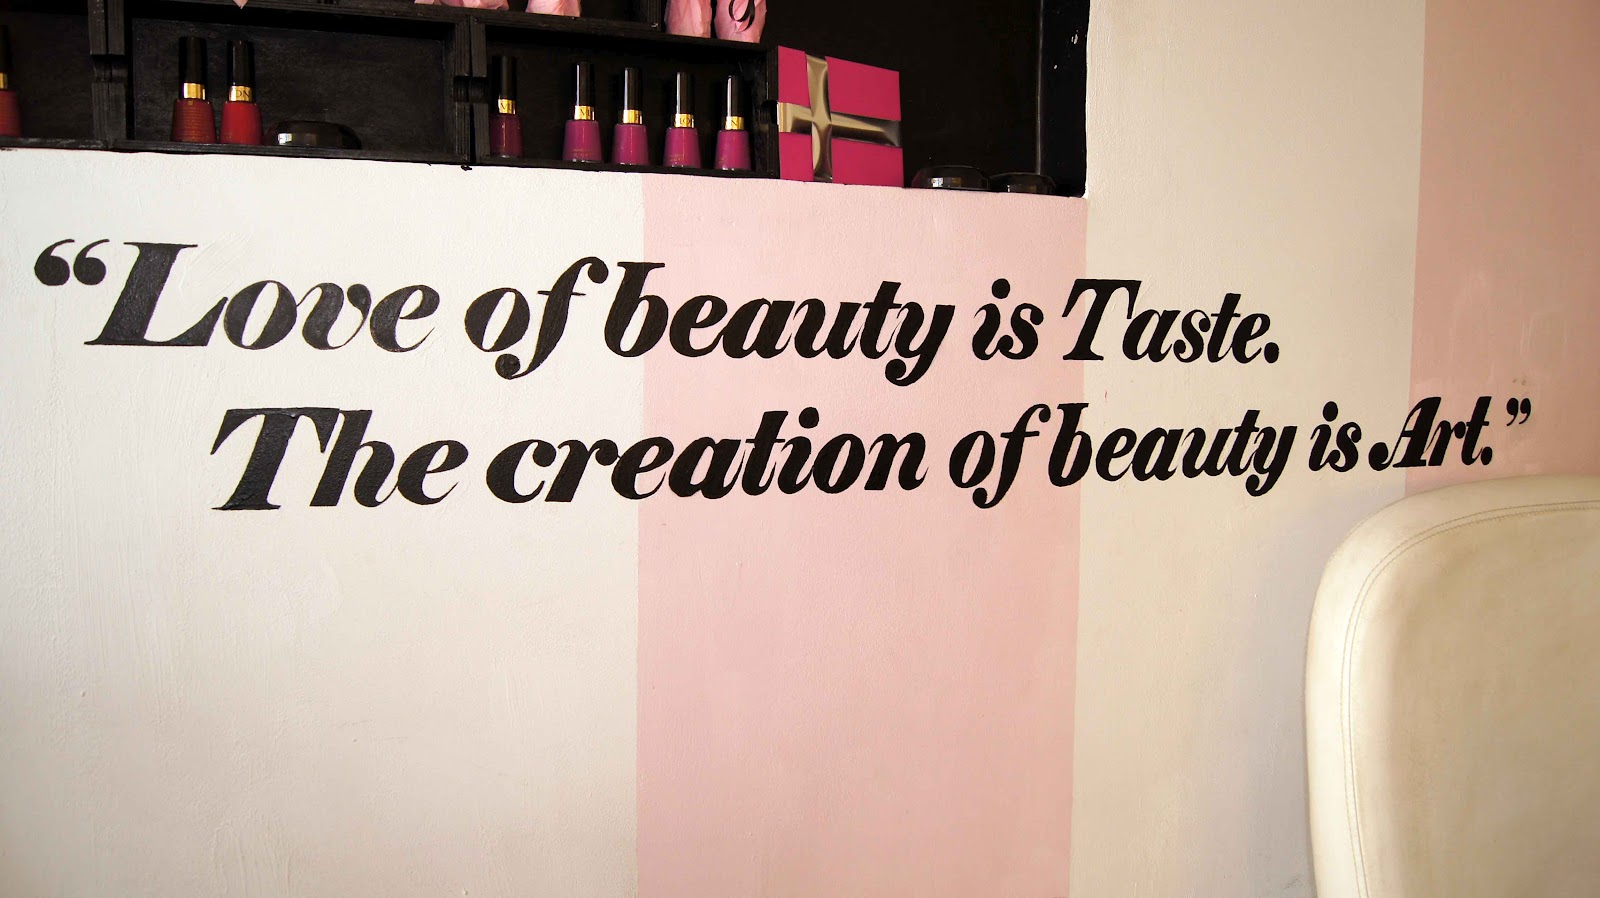 Beauty salon quotes and sayings quotesgram for About beauty salon